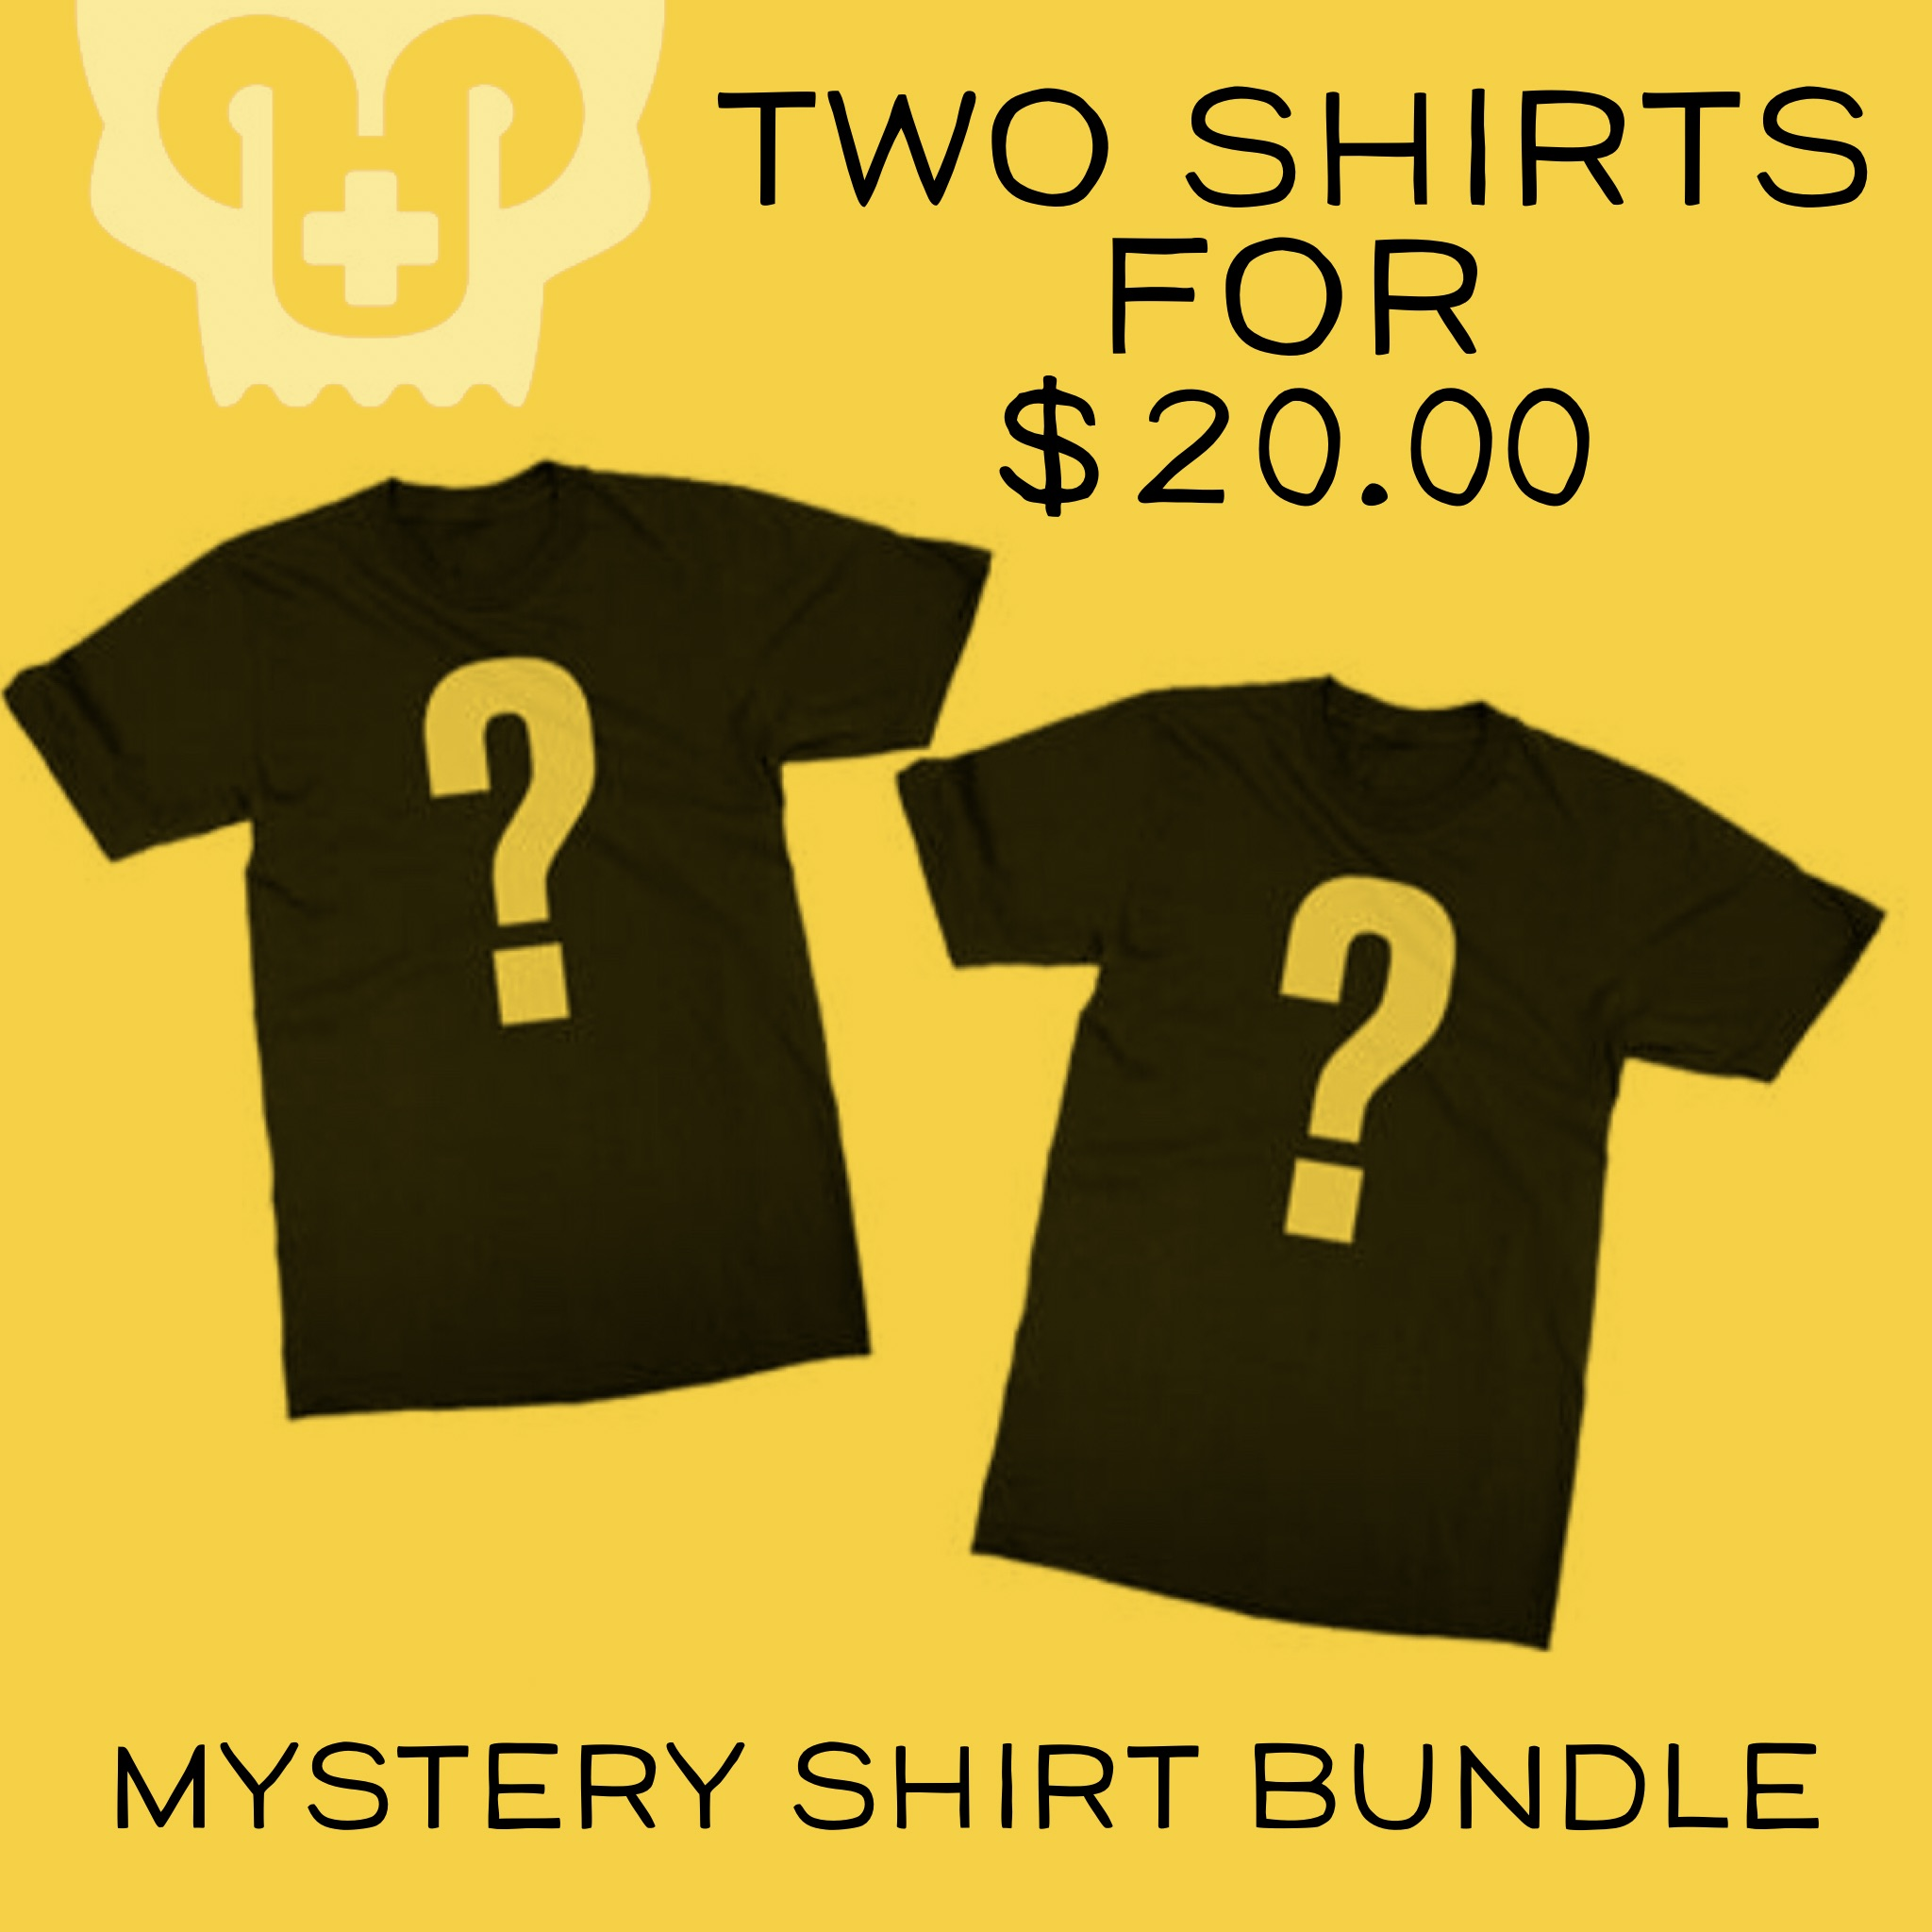 Mystery T-shirt Bundle!  2 for $20.00